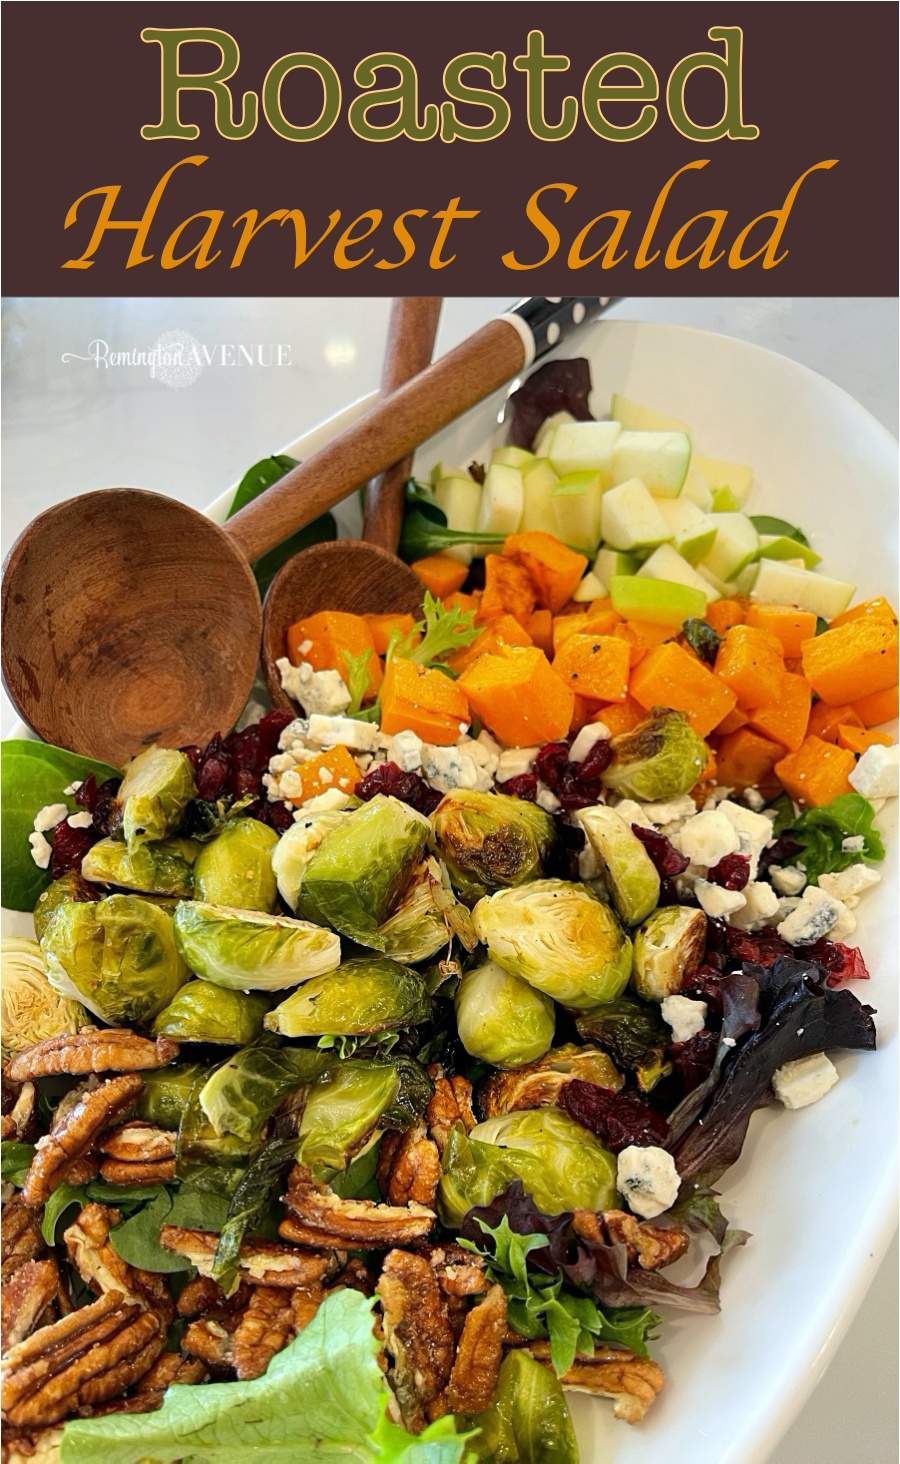 roasted harvest salad with brussel sprouts